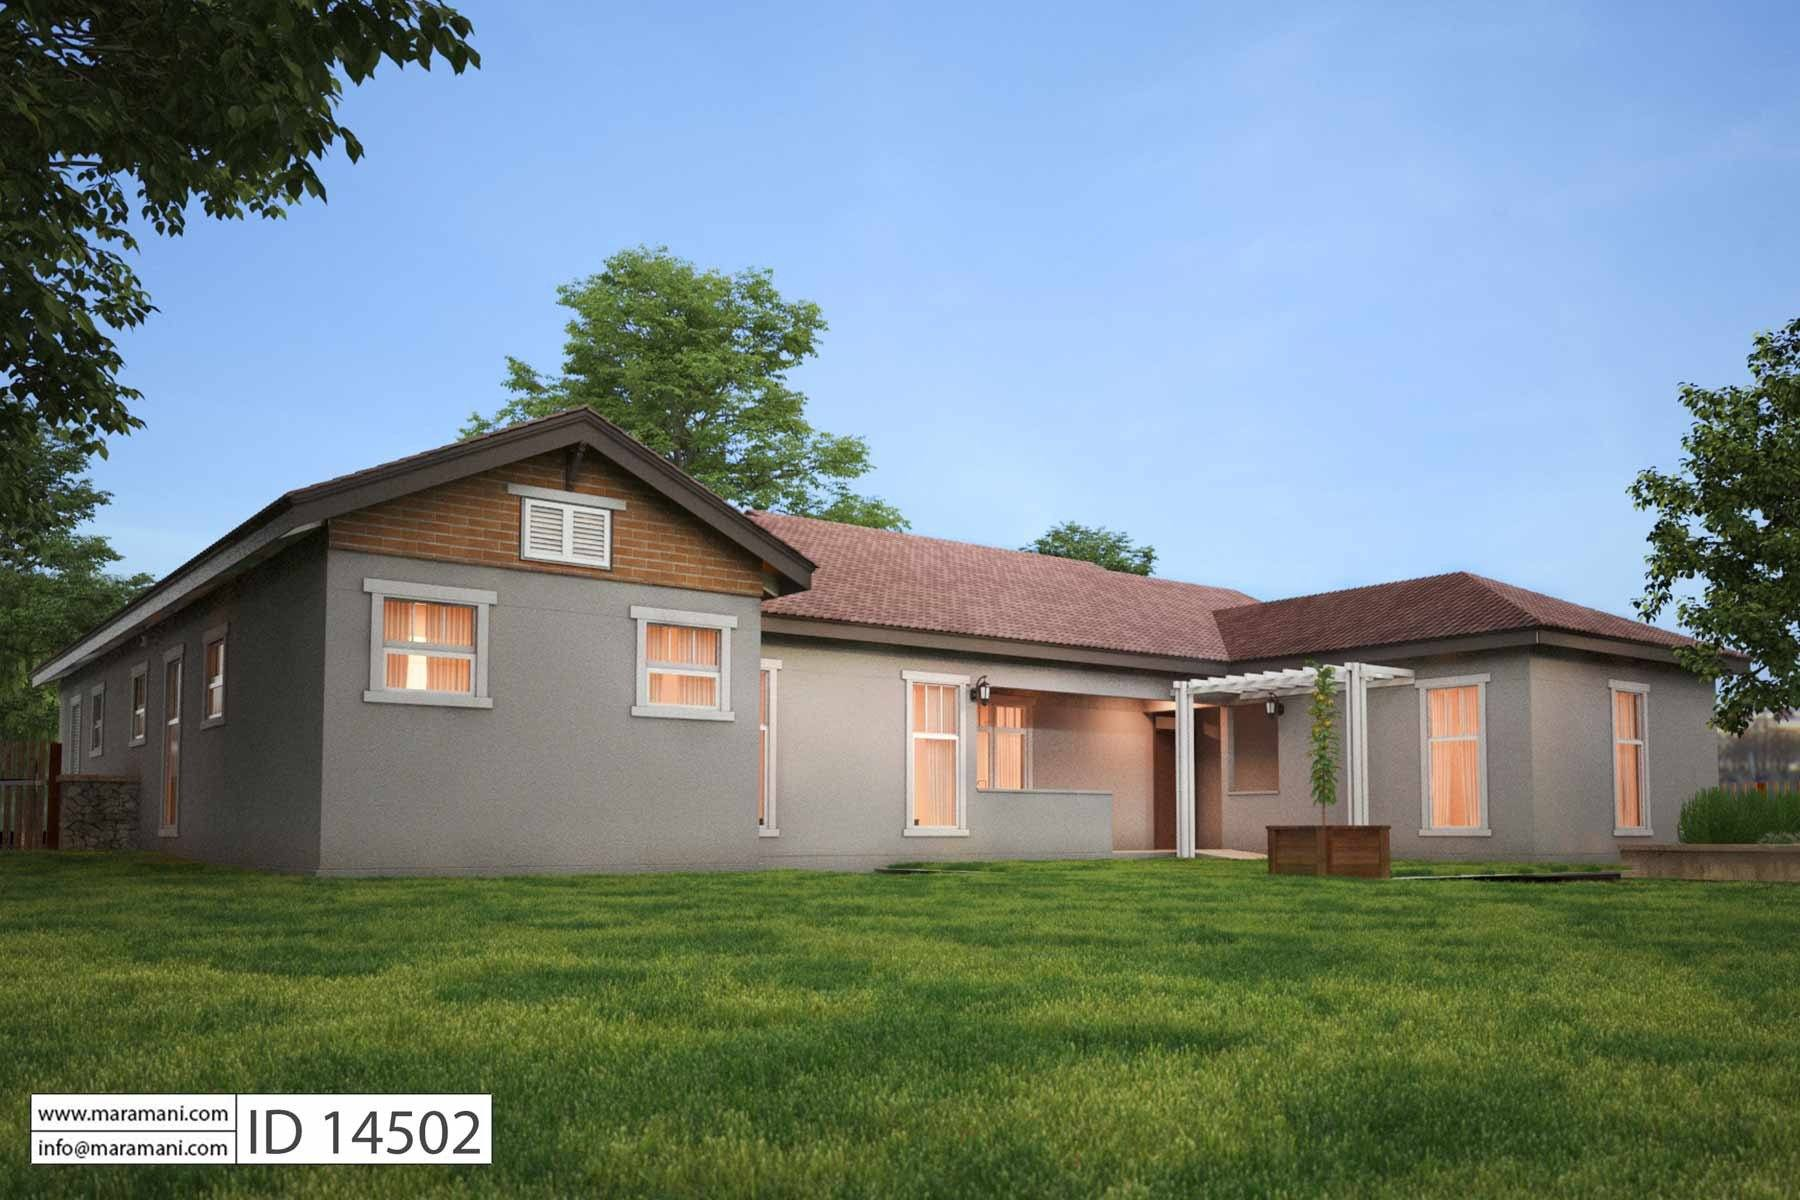 Four Bedroom Bungalow House Plan - ID 14502 - Floor Plans by Maramani